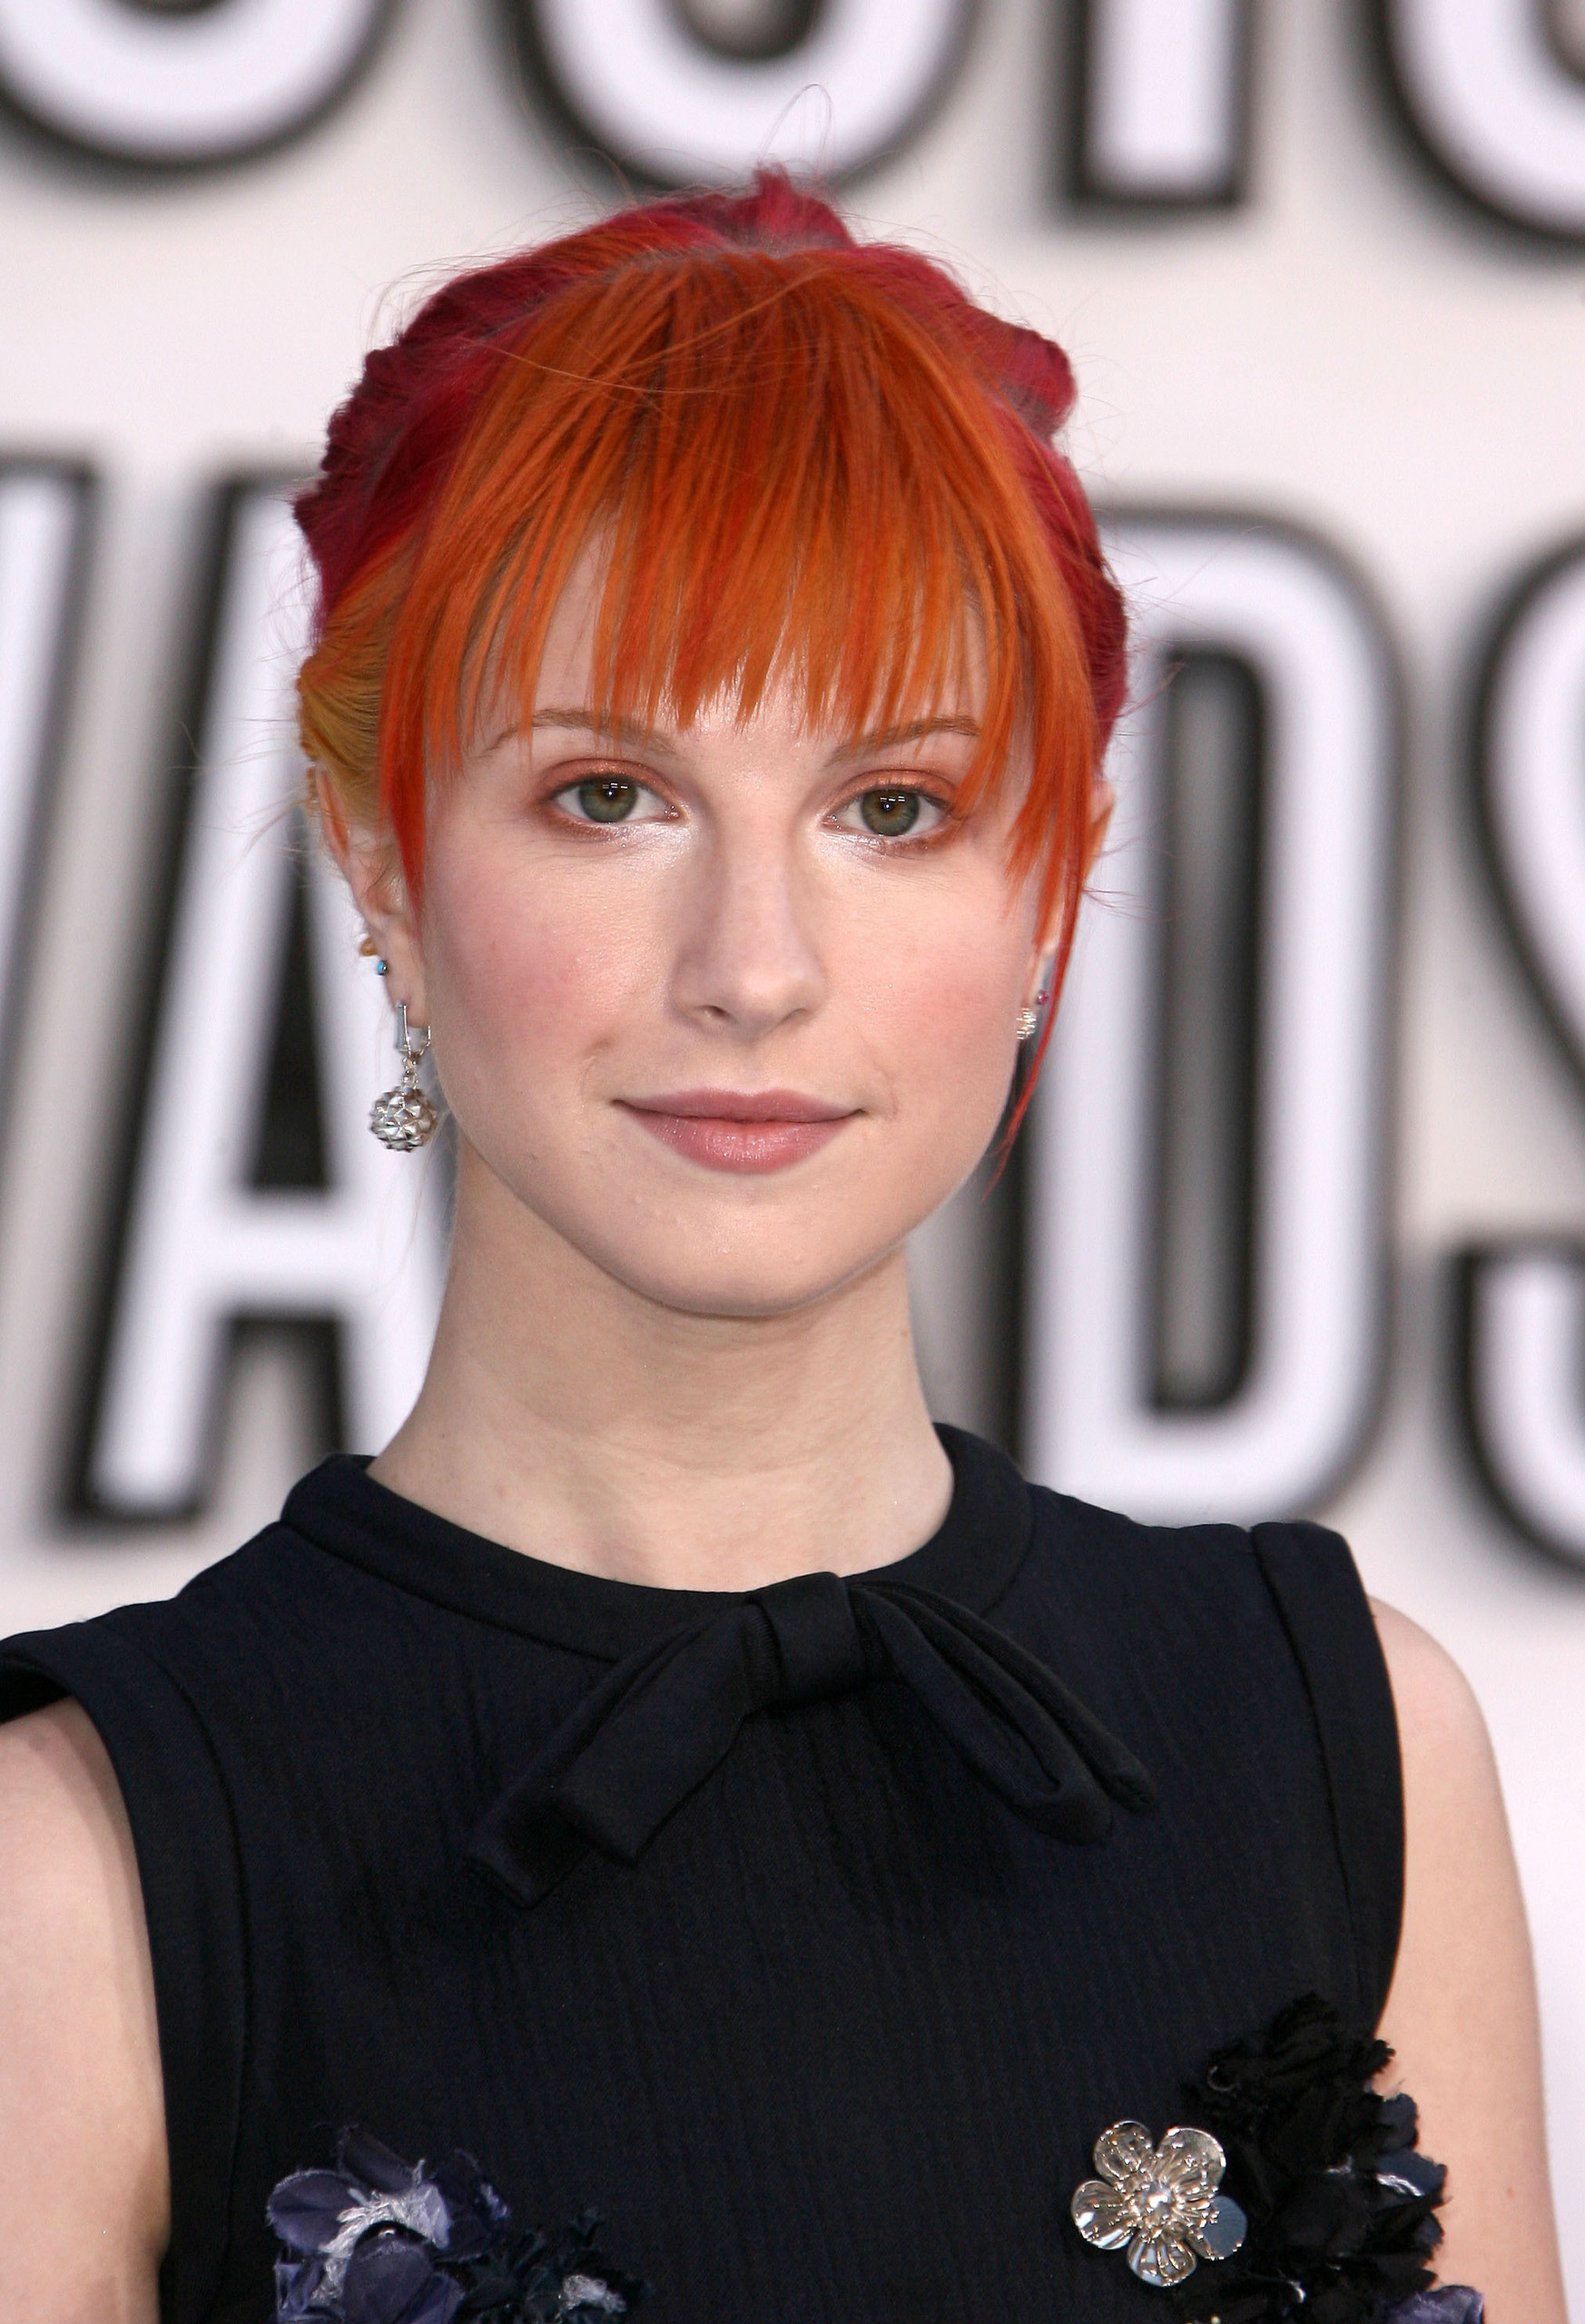 http://images4.fanpop.com/image/photos/15500000/Hayley-at-Video-Music-Awards-2010-paramore-15519206-1746-2560.jpg